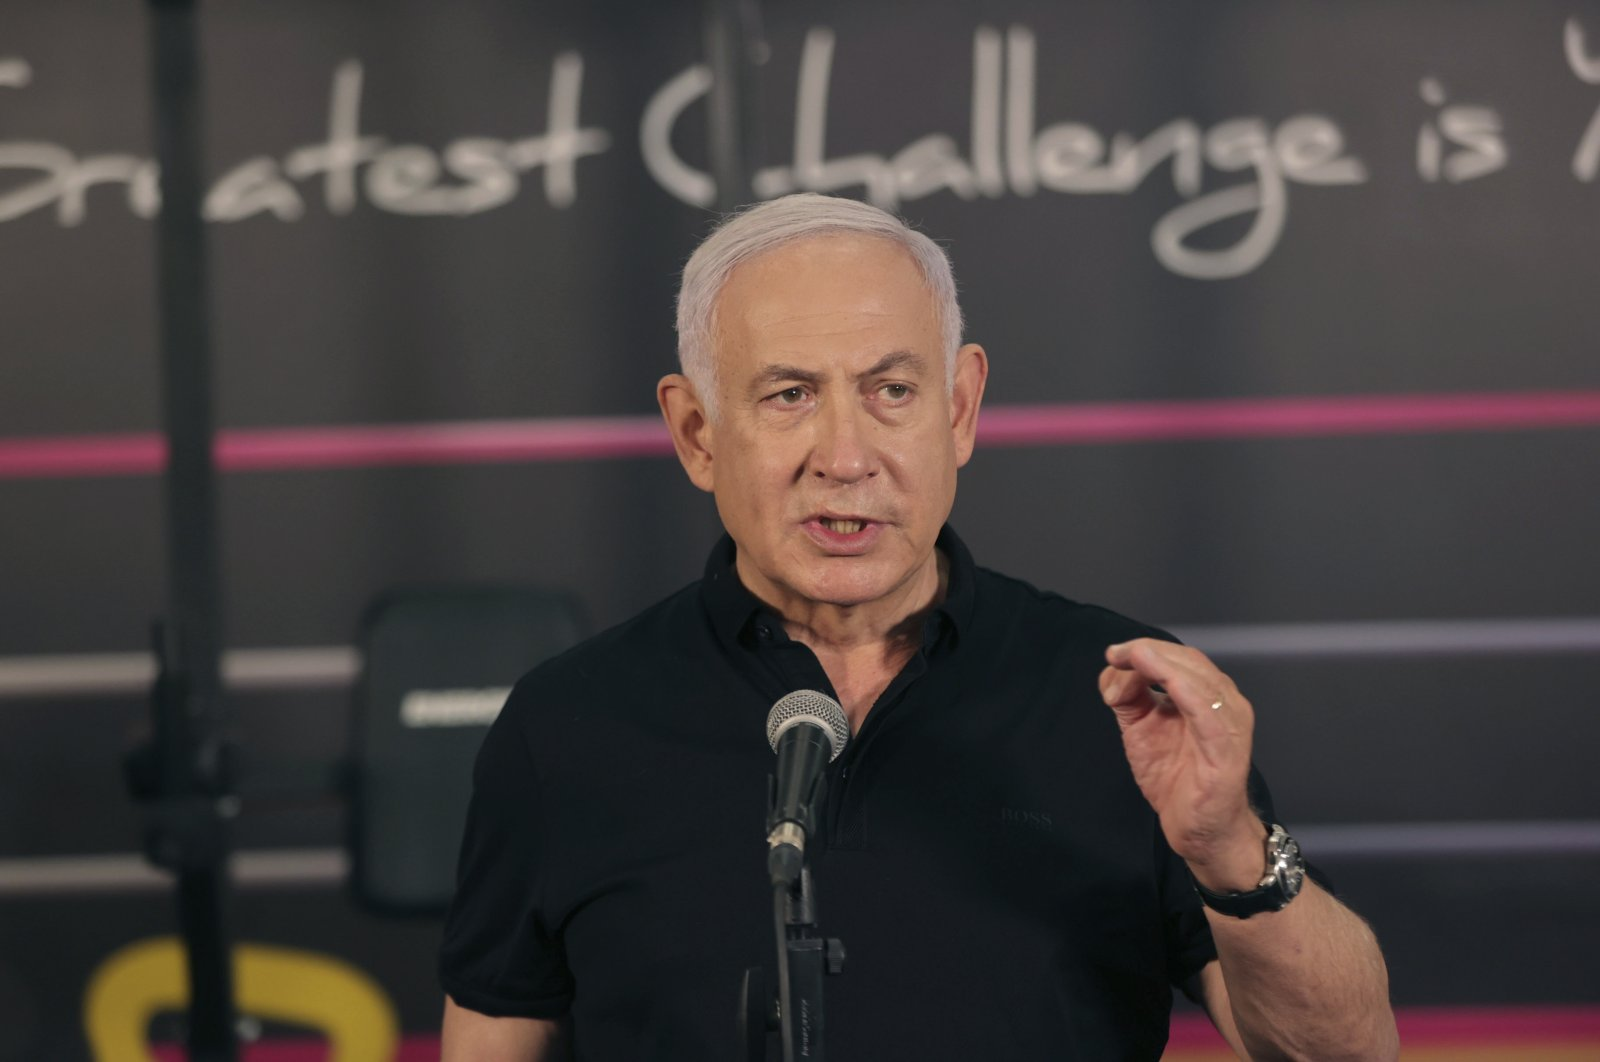 Israeli Prime Minister Benjamin Netanyahu talks to the media during a visit to the Fitness gym ahead of the re-opening of the branch in Petah Tikva, Israel, Feb. 20, 2021. (AP Photo)